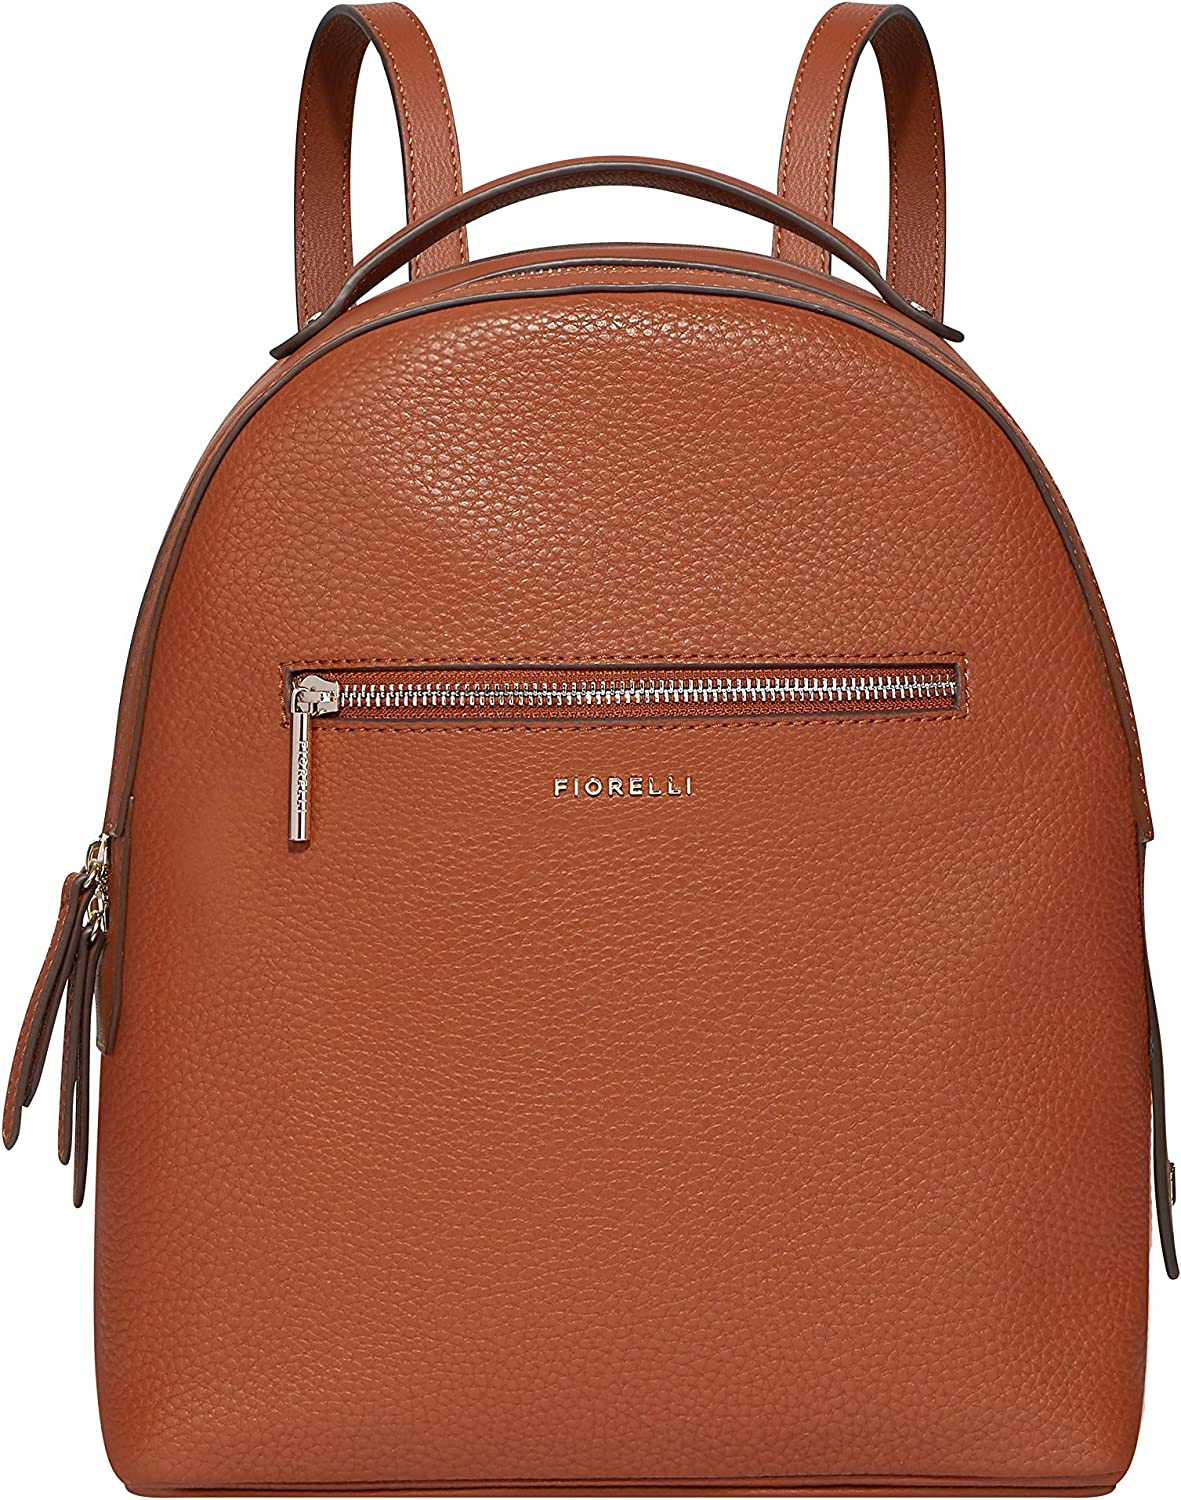 Fiorelli ANOUK Backpack in Tan Casual